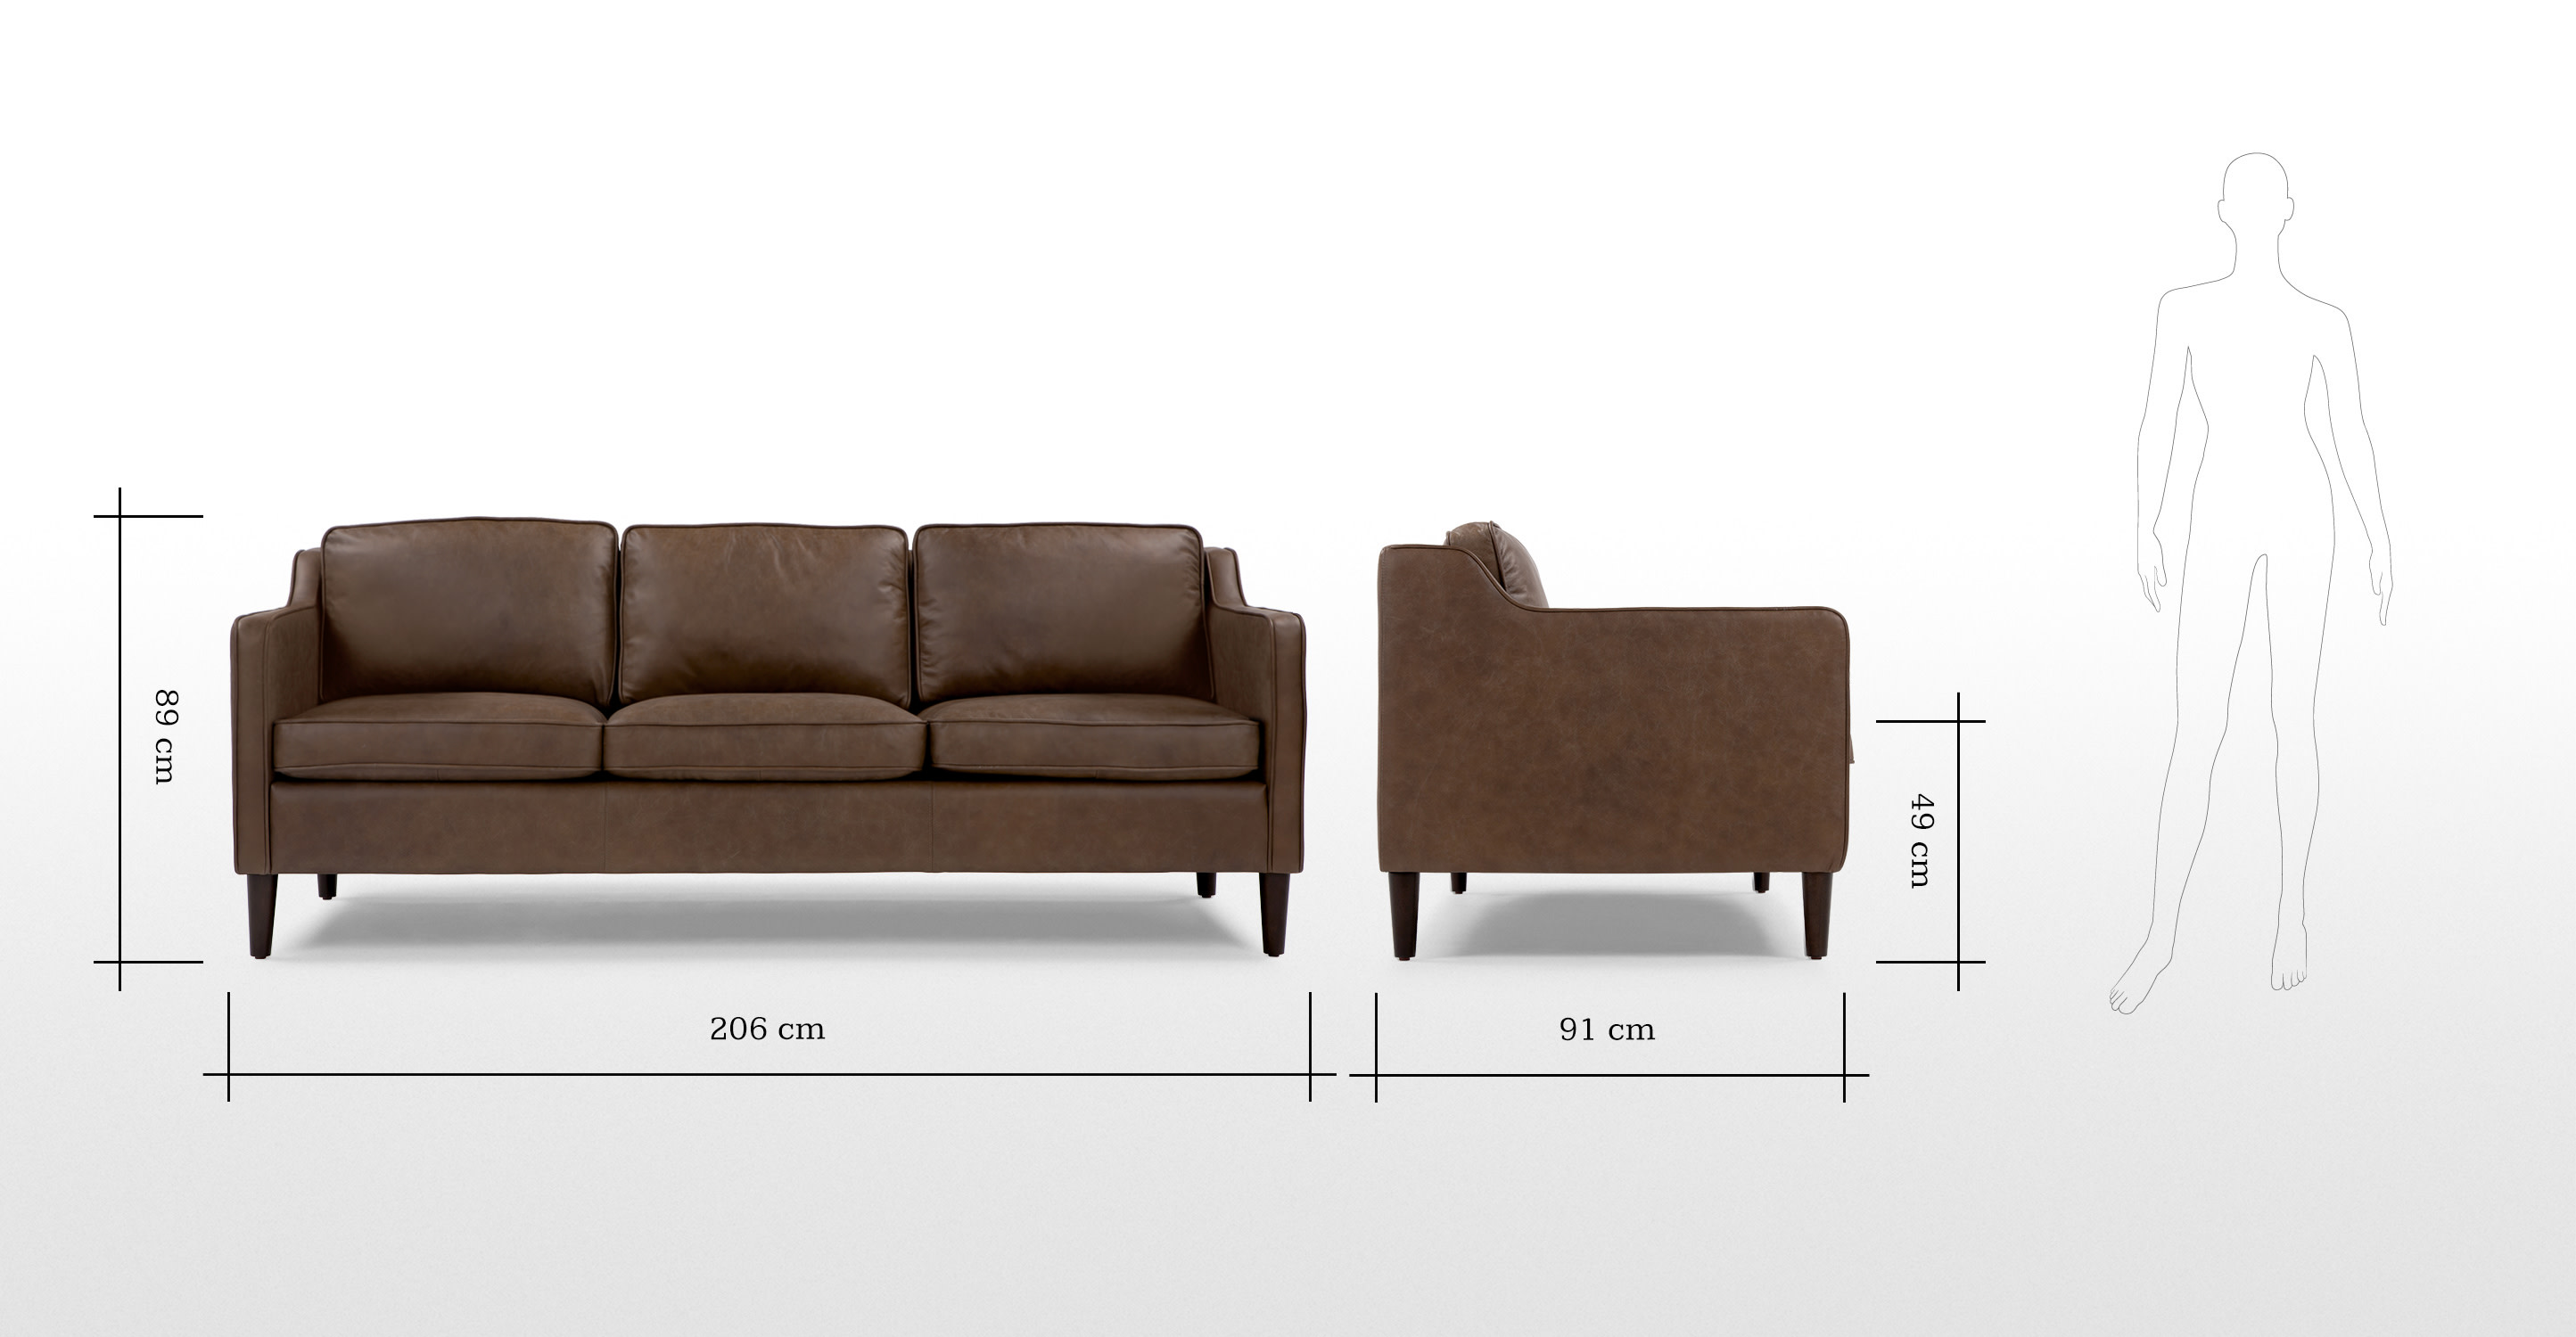 Walken 3 Seater Sofa In Saddle Tan Premium Leather